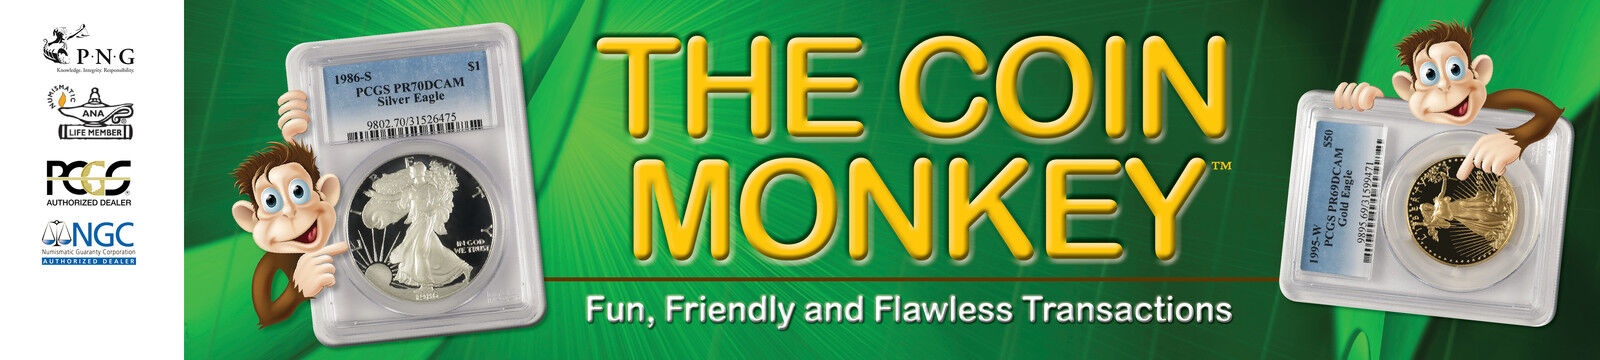 Your Coin Monkeys